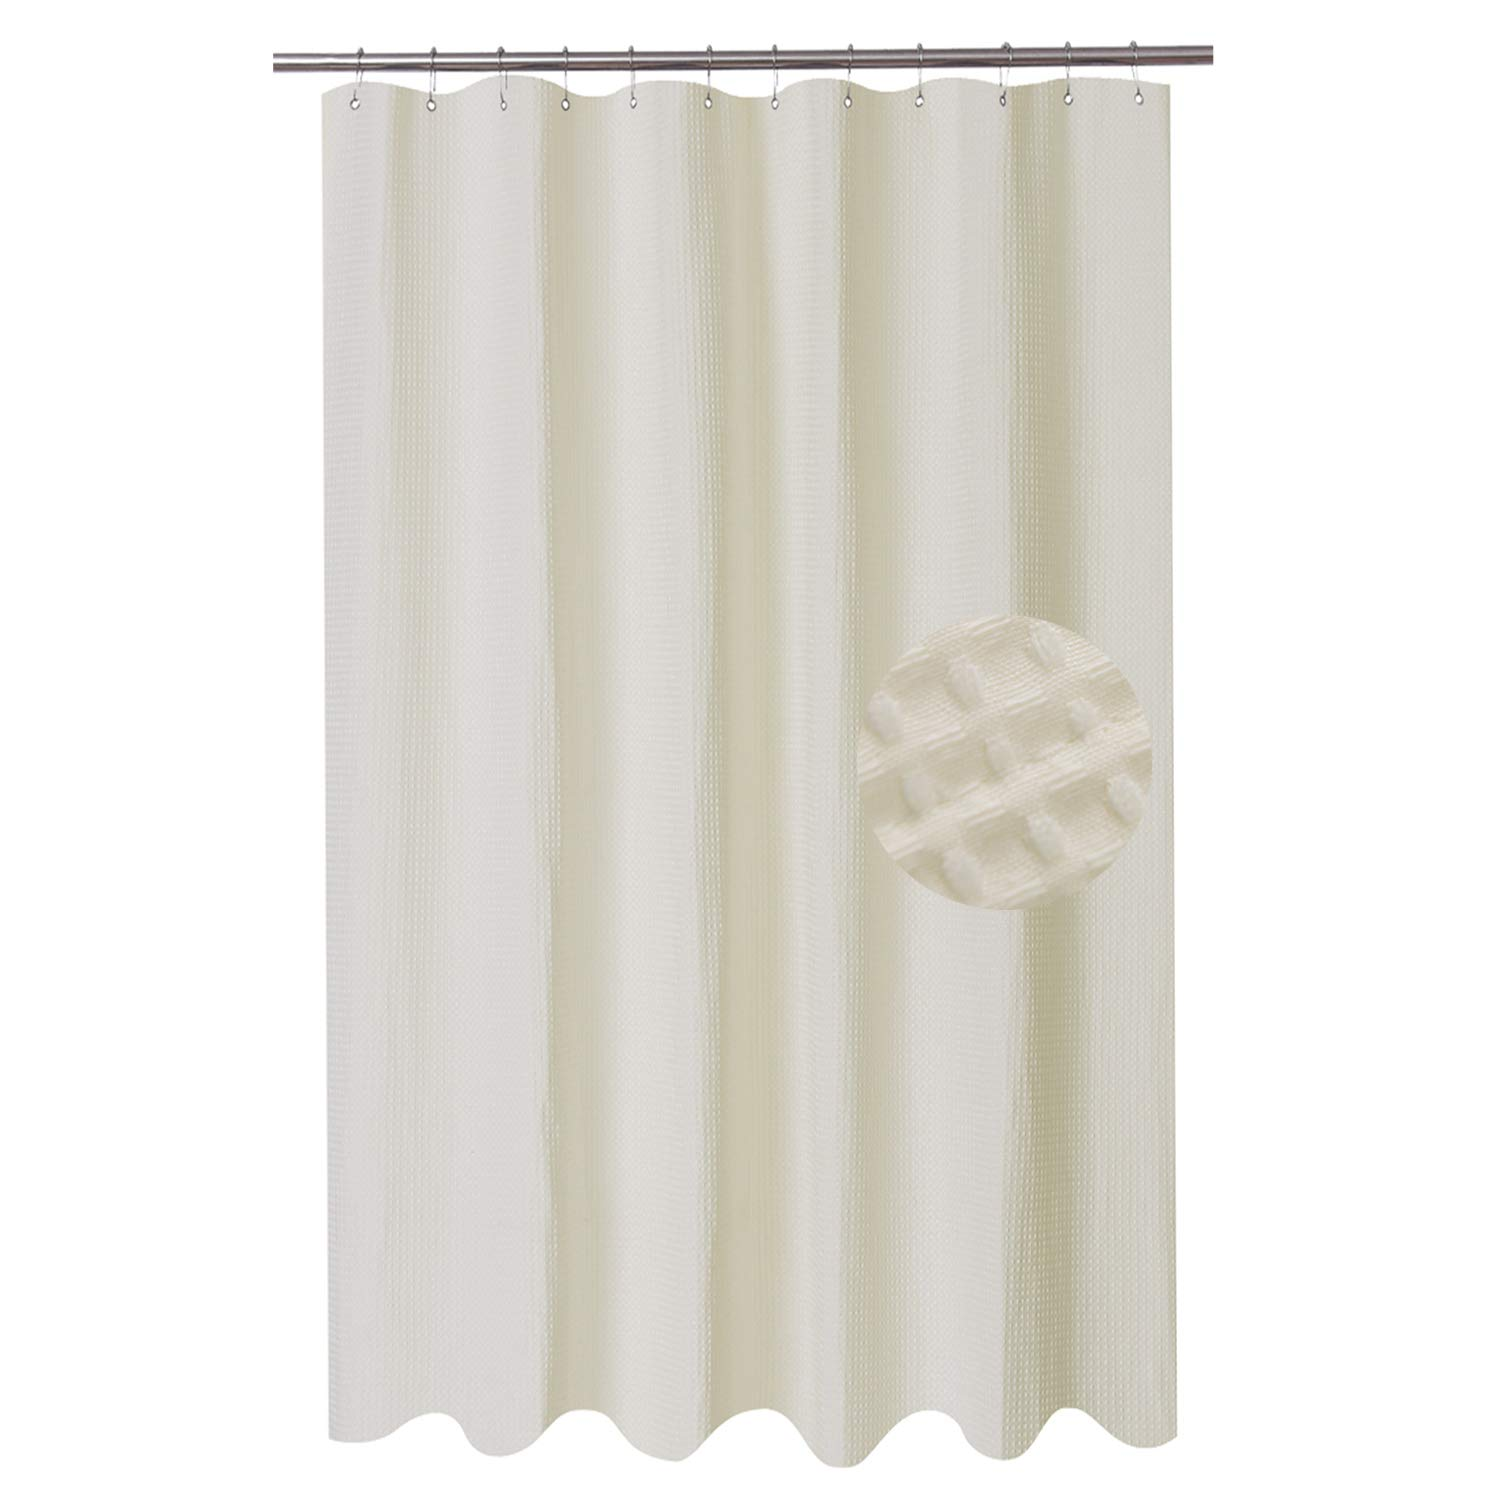 barossa design extra long fabric waffle weave shower curtain 84 inch height hotel collection water repellent 230gsm heavy duty machine washable